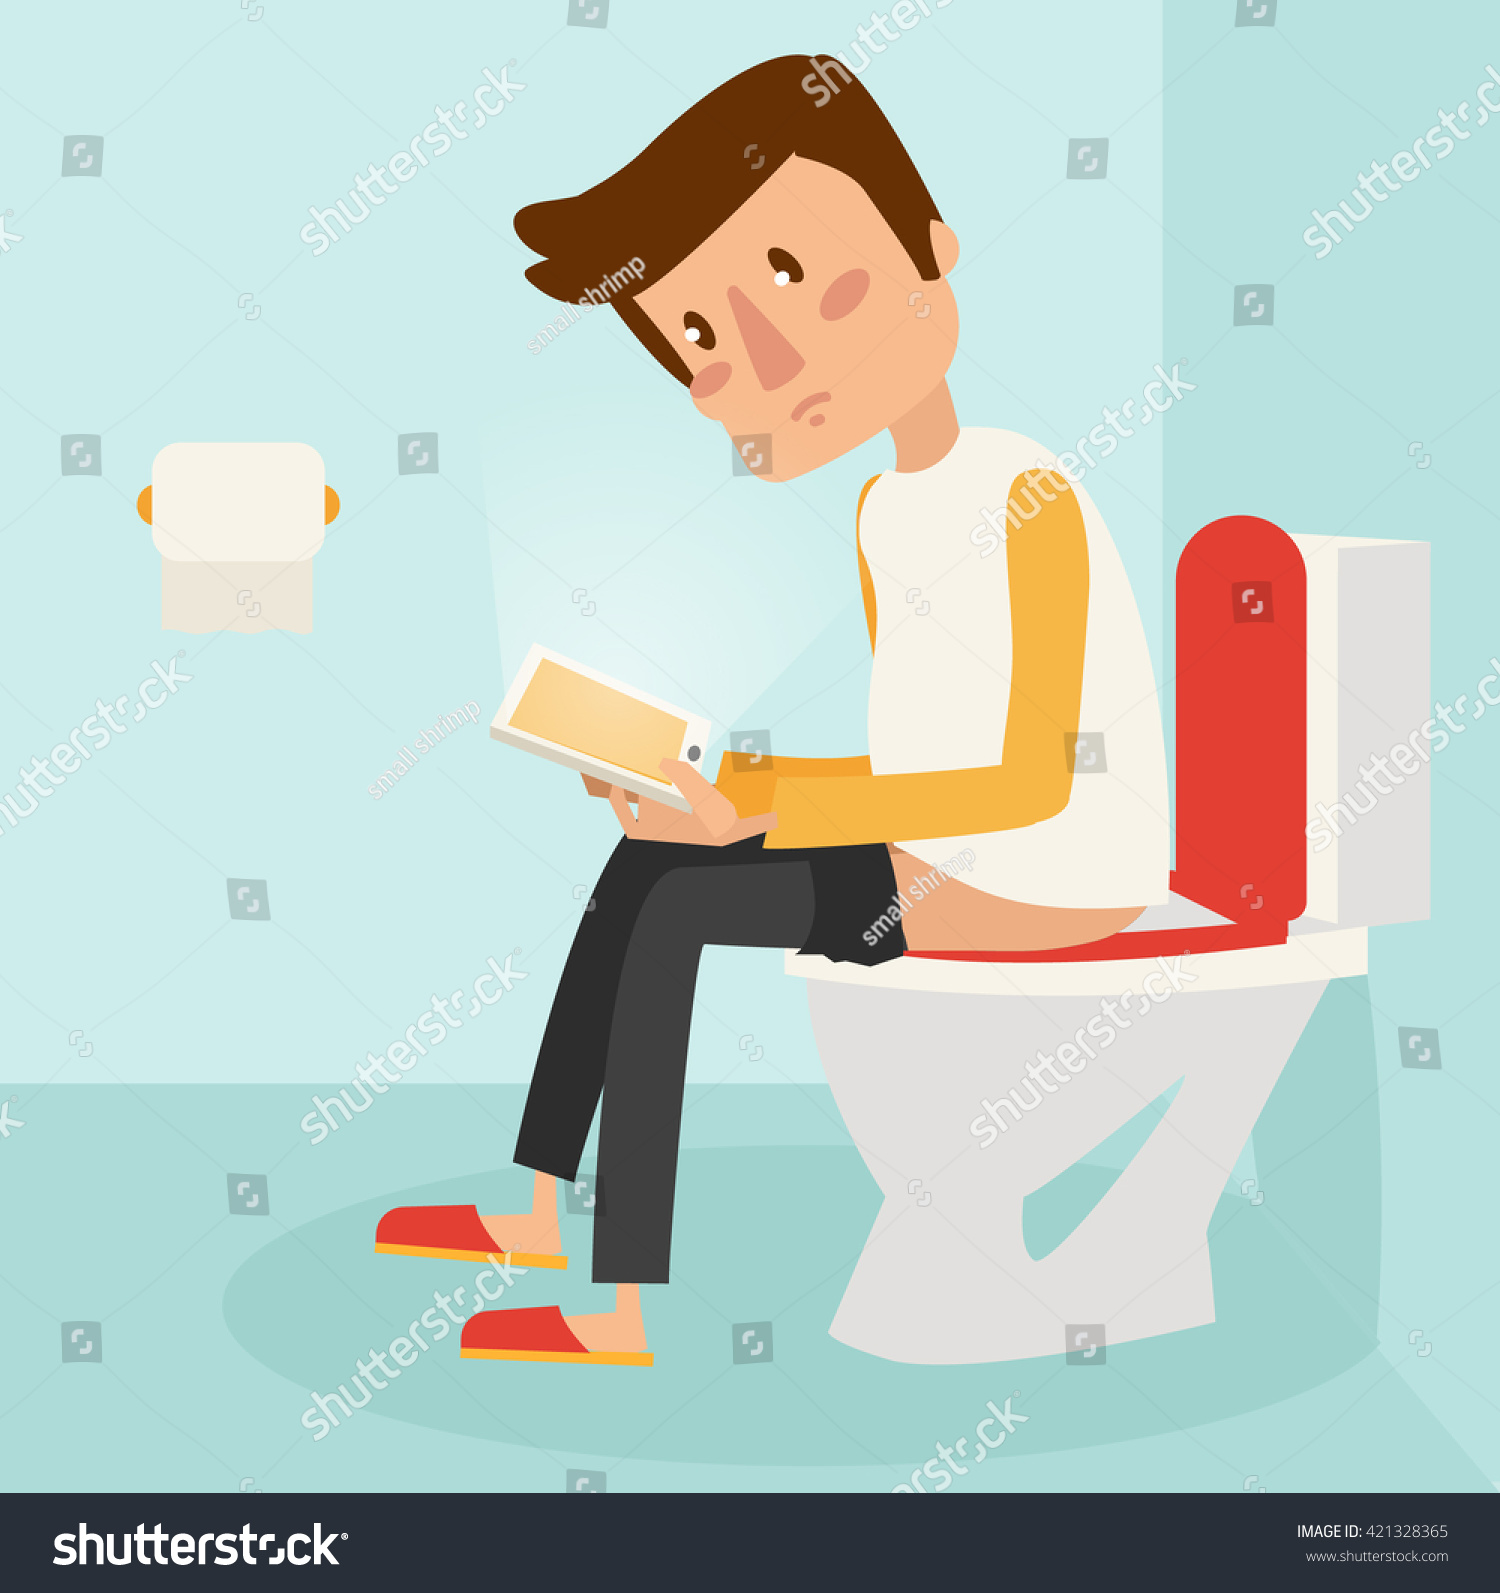 using the bathroom. Man using phone while the bathroom  vecor illustration Using Phone While Bathroom Stock Vector 421328365